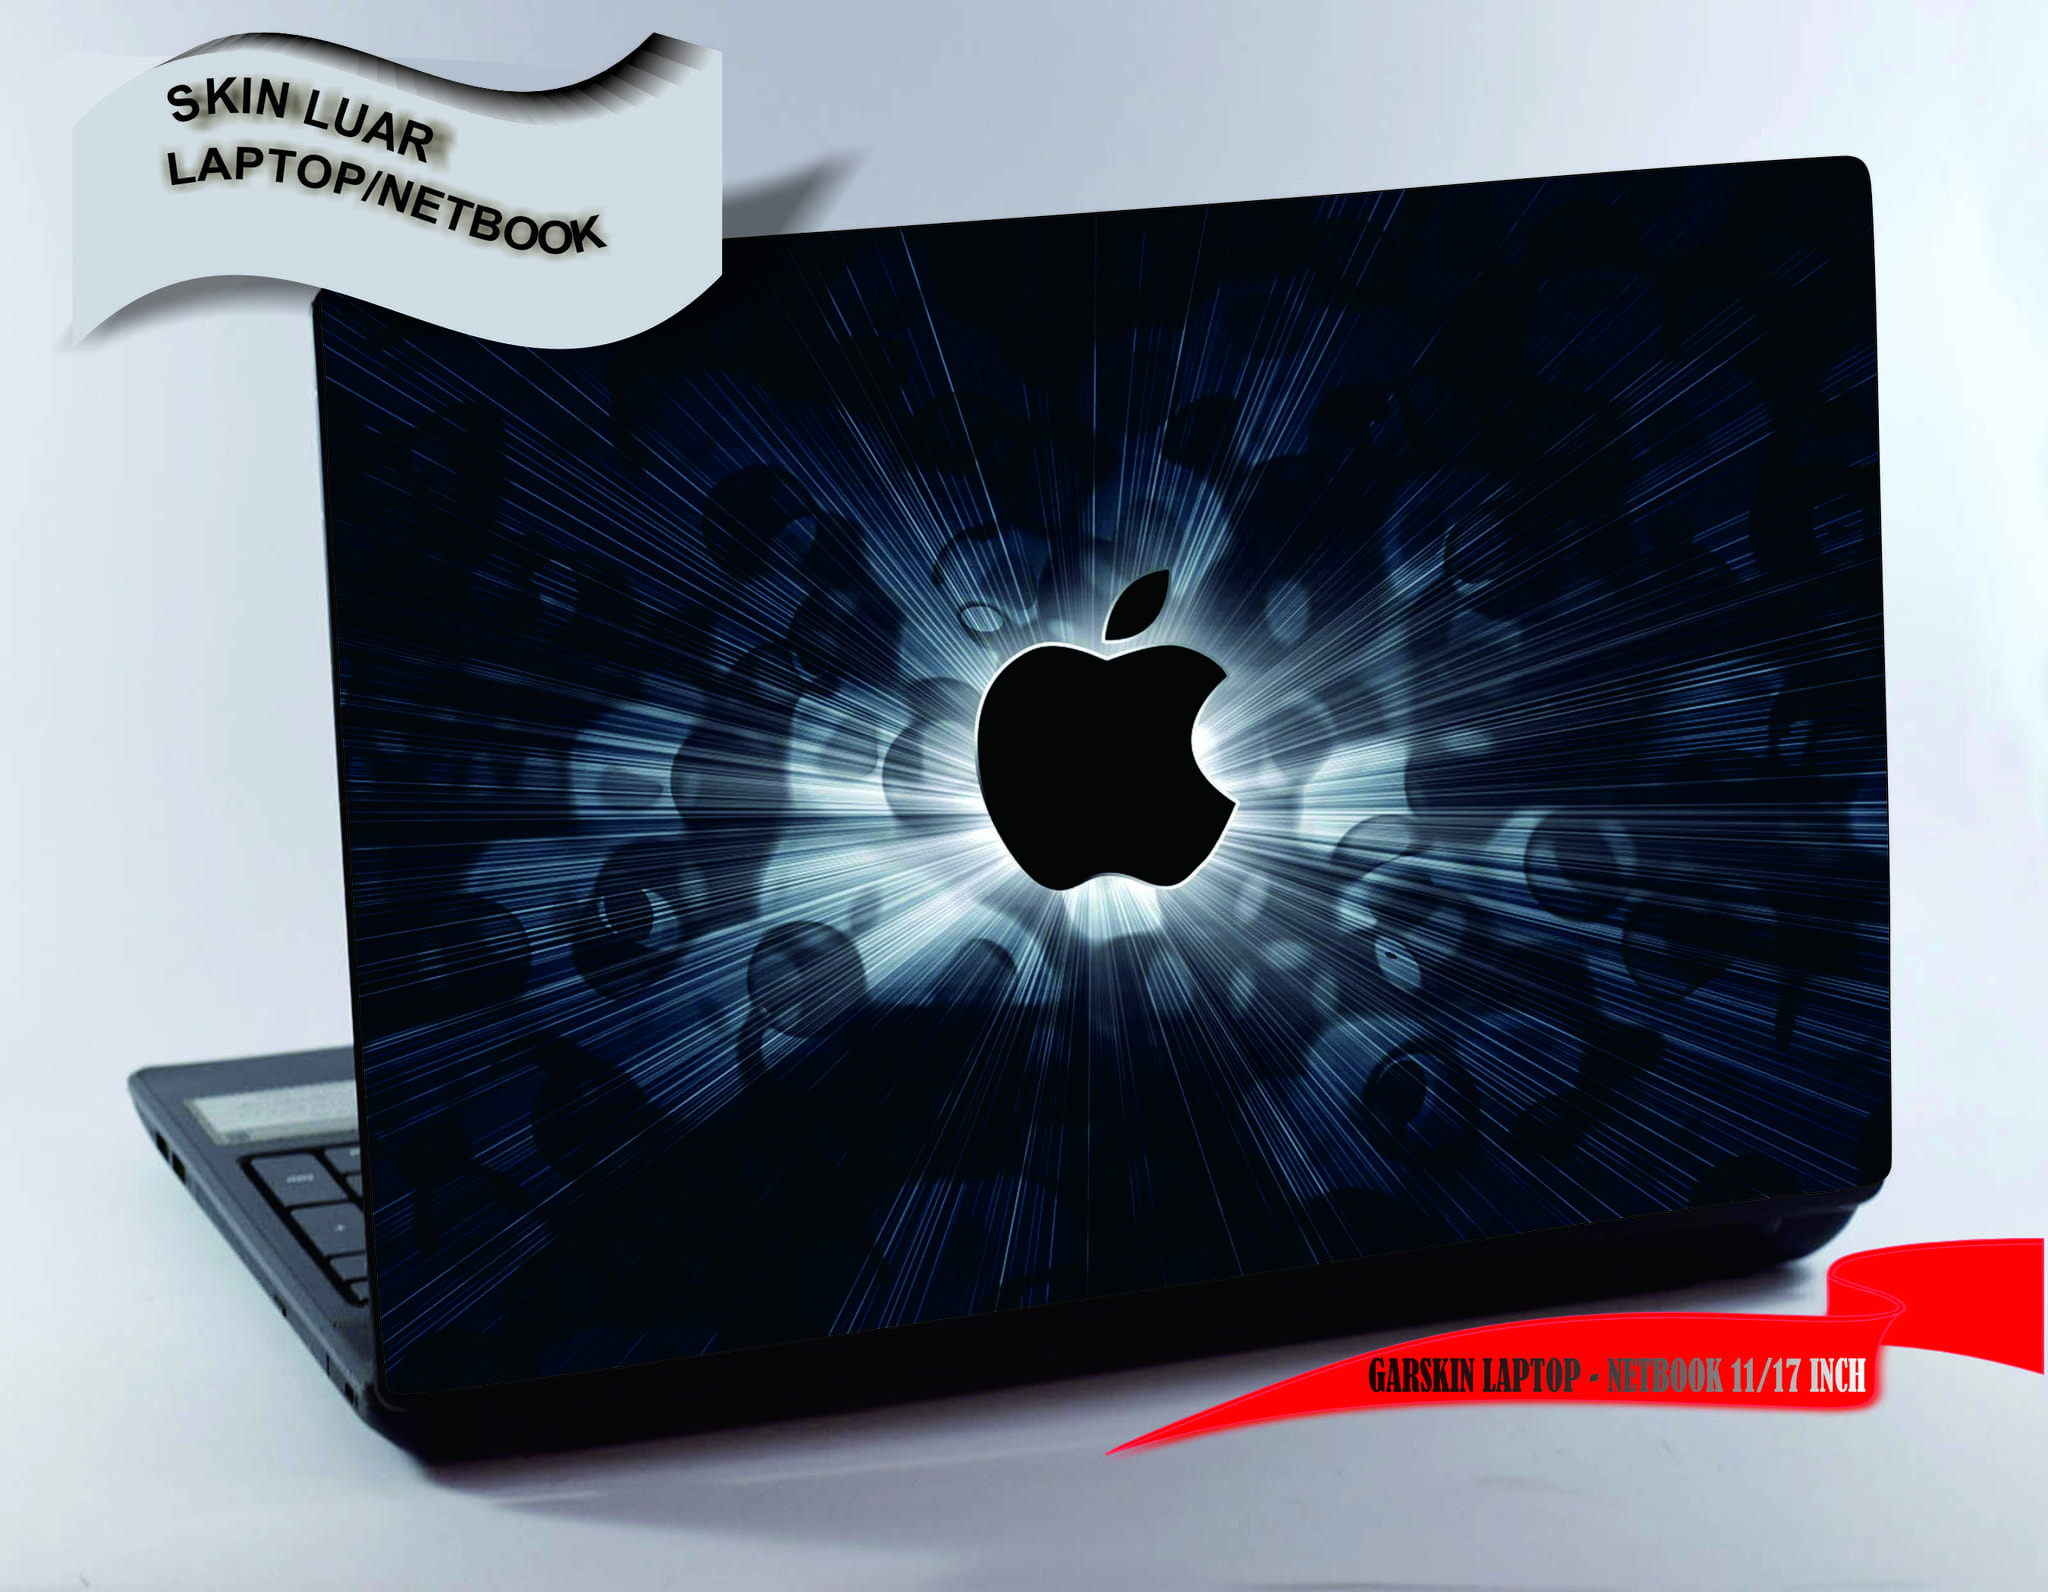 Garskin luar Laptop/Netbook - Black Apple design